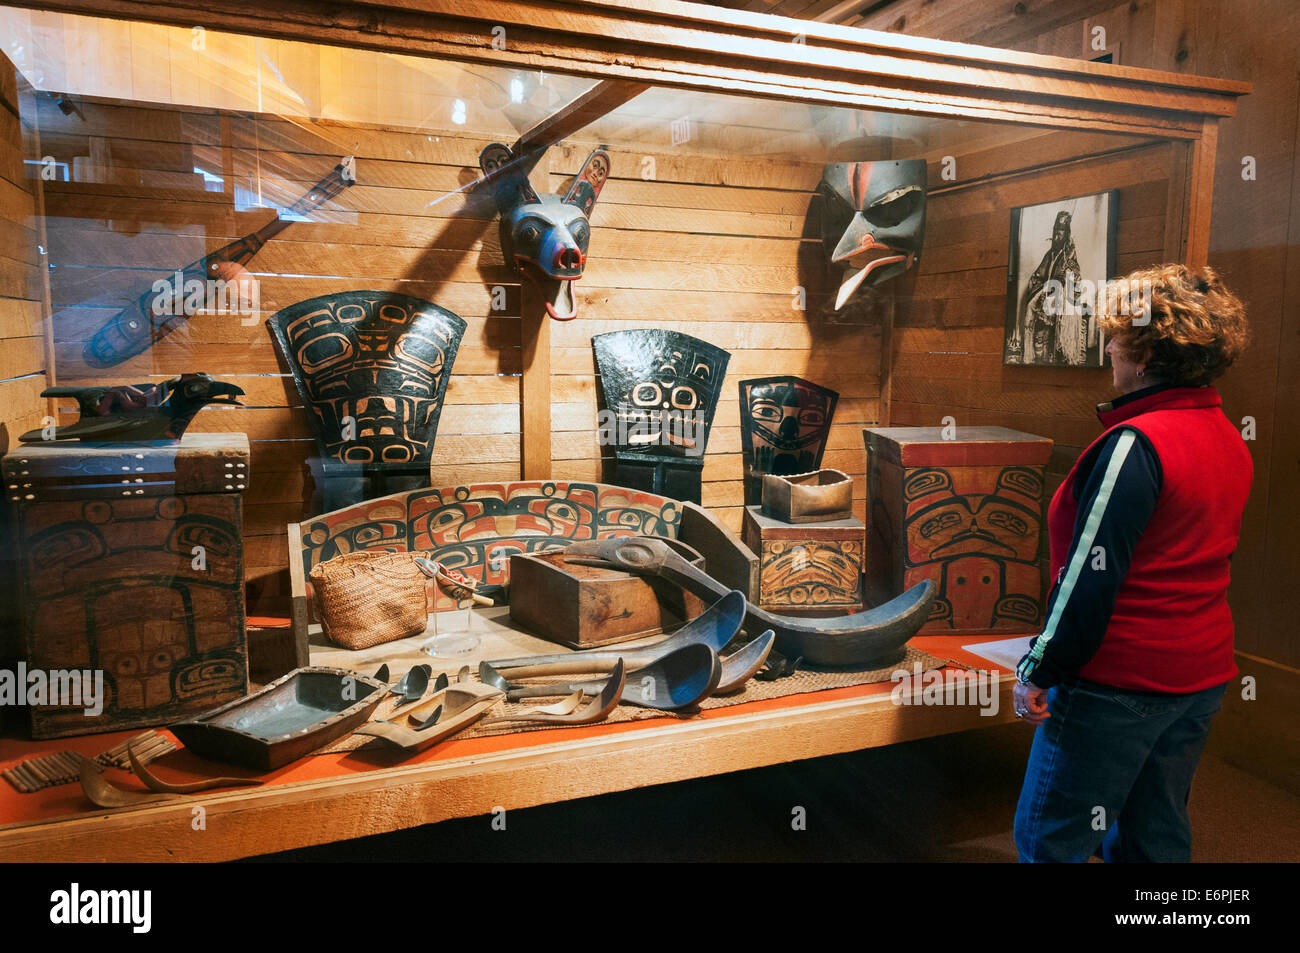 Elk203-4385 Canada, British Columbia, Prince Rupert, Museum of Northern BC, exhibit - Stock Image